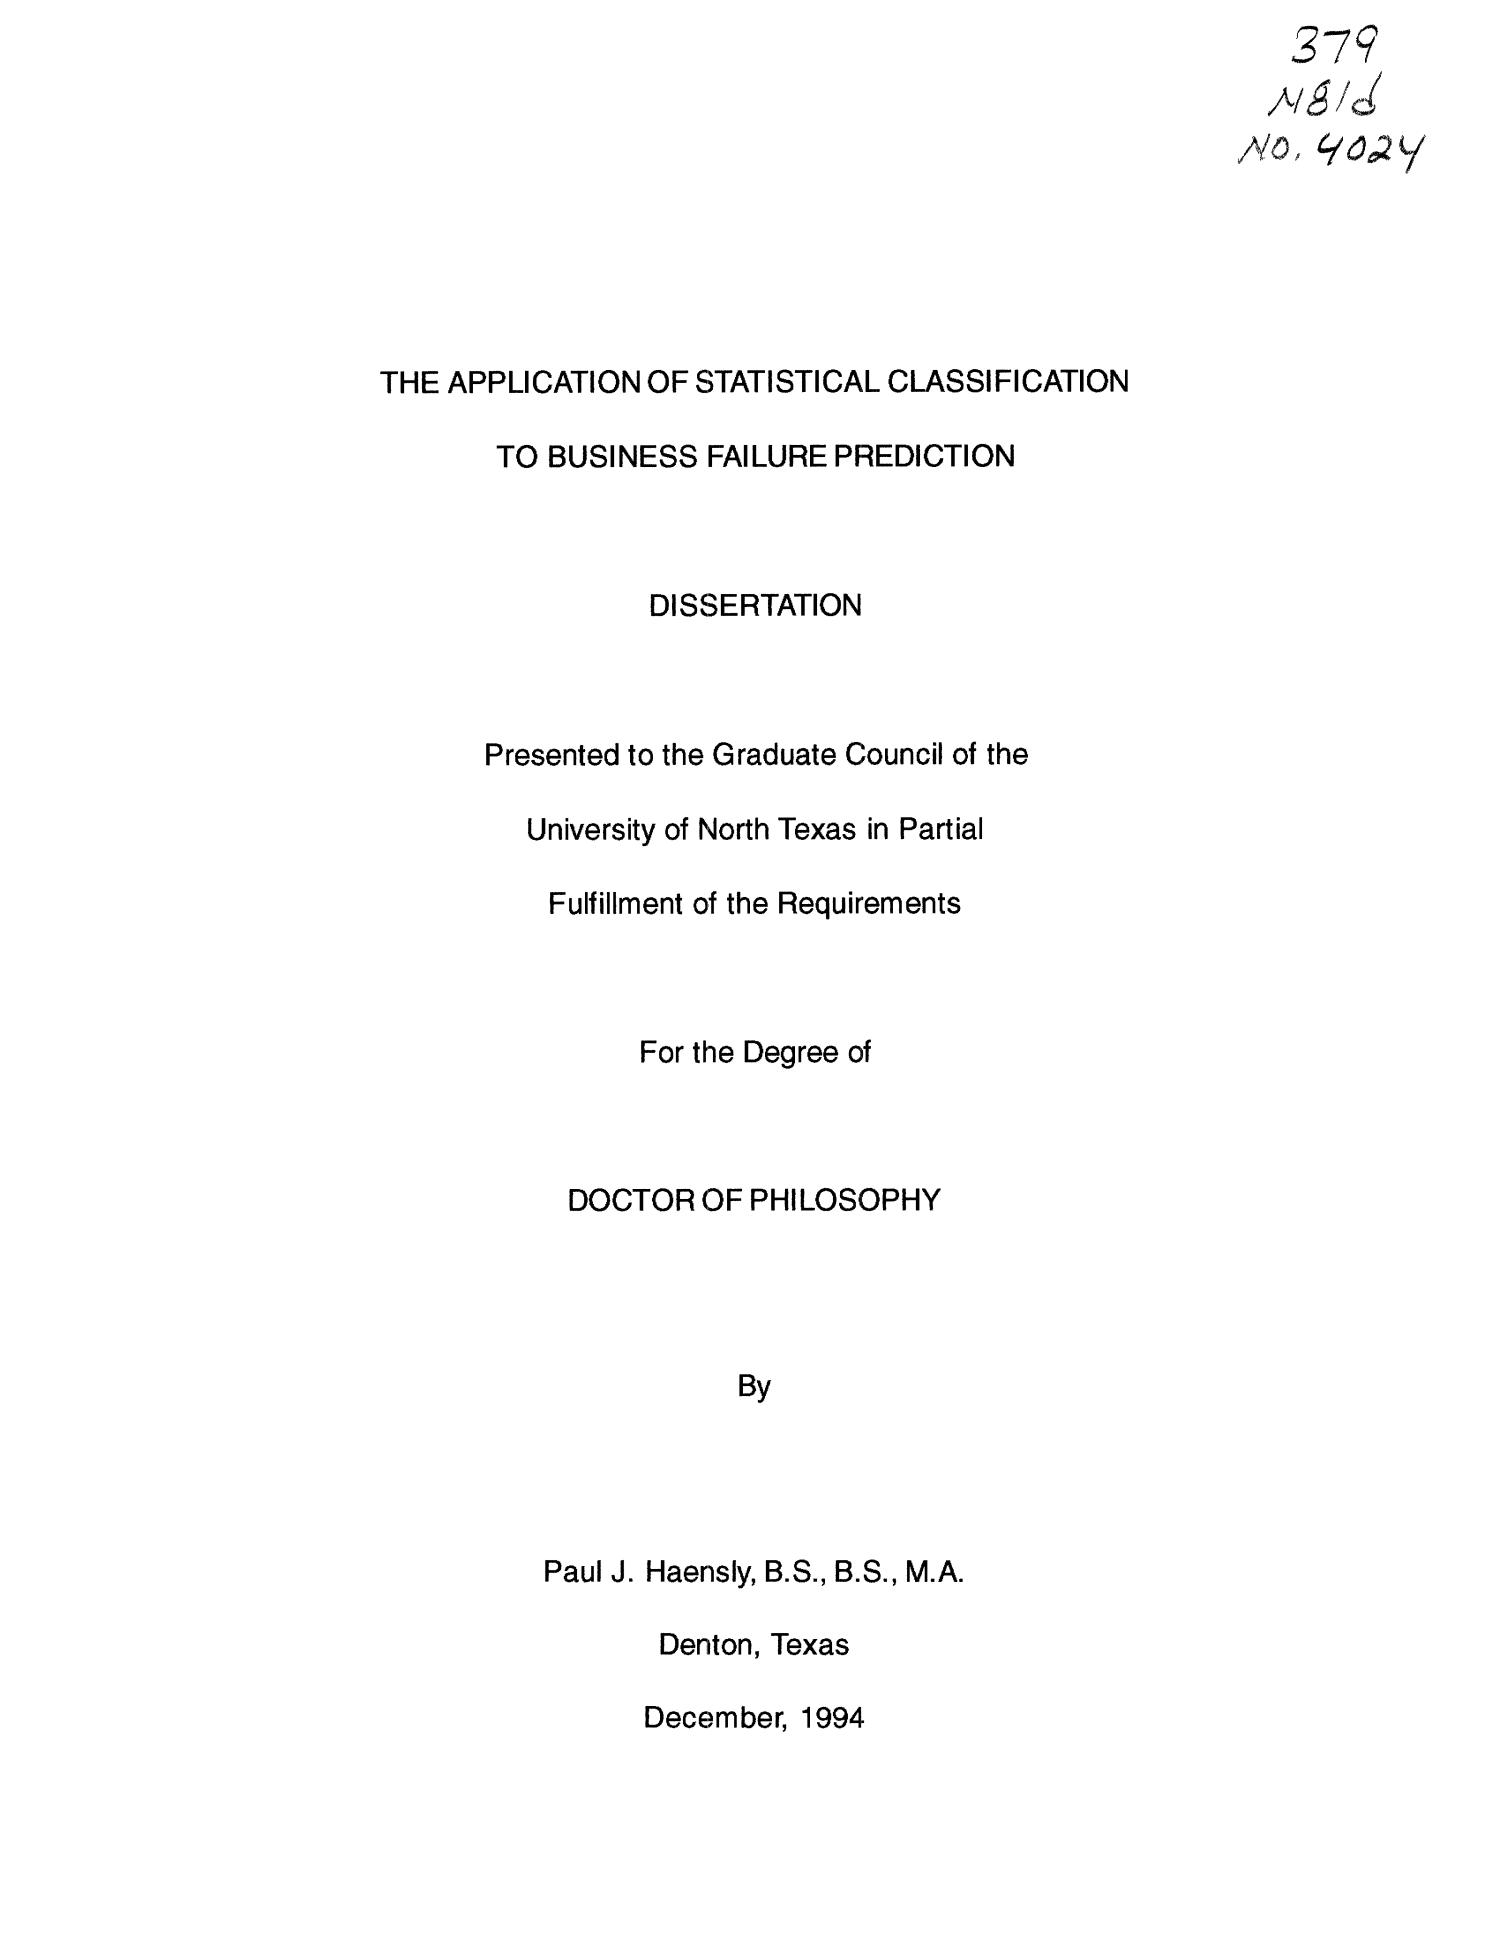 The Application of Statistical Classification to Business Failure Prediction                                                                                                      None